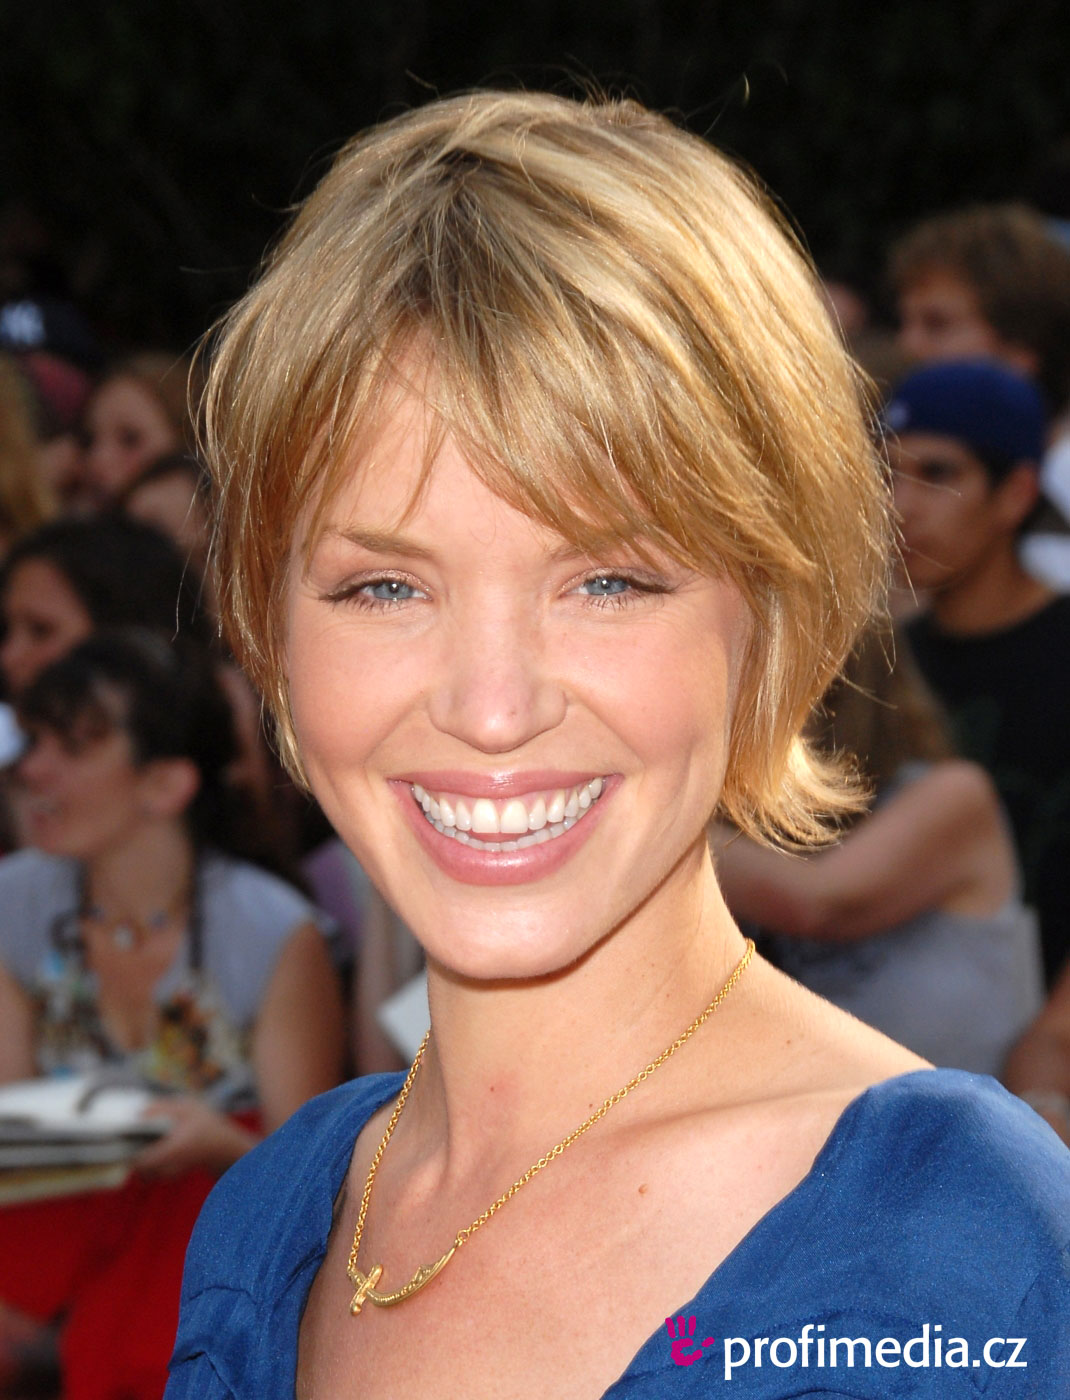 Rate the Ashley Scott's hairstyle